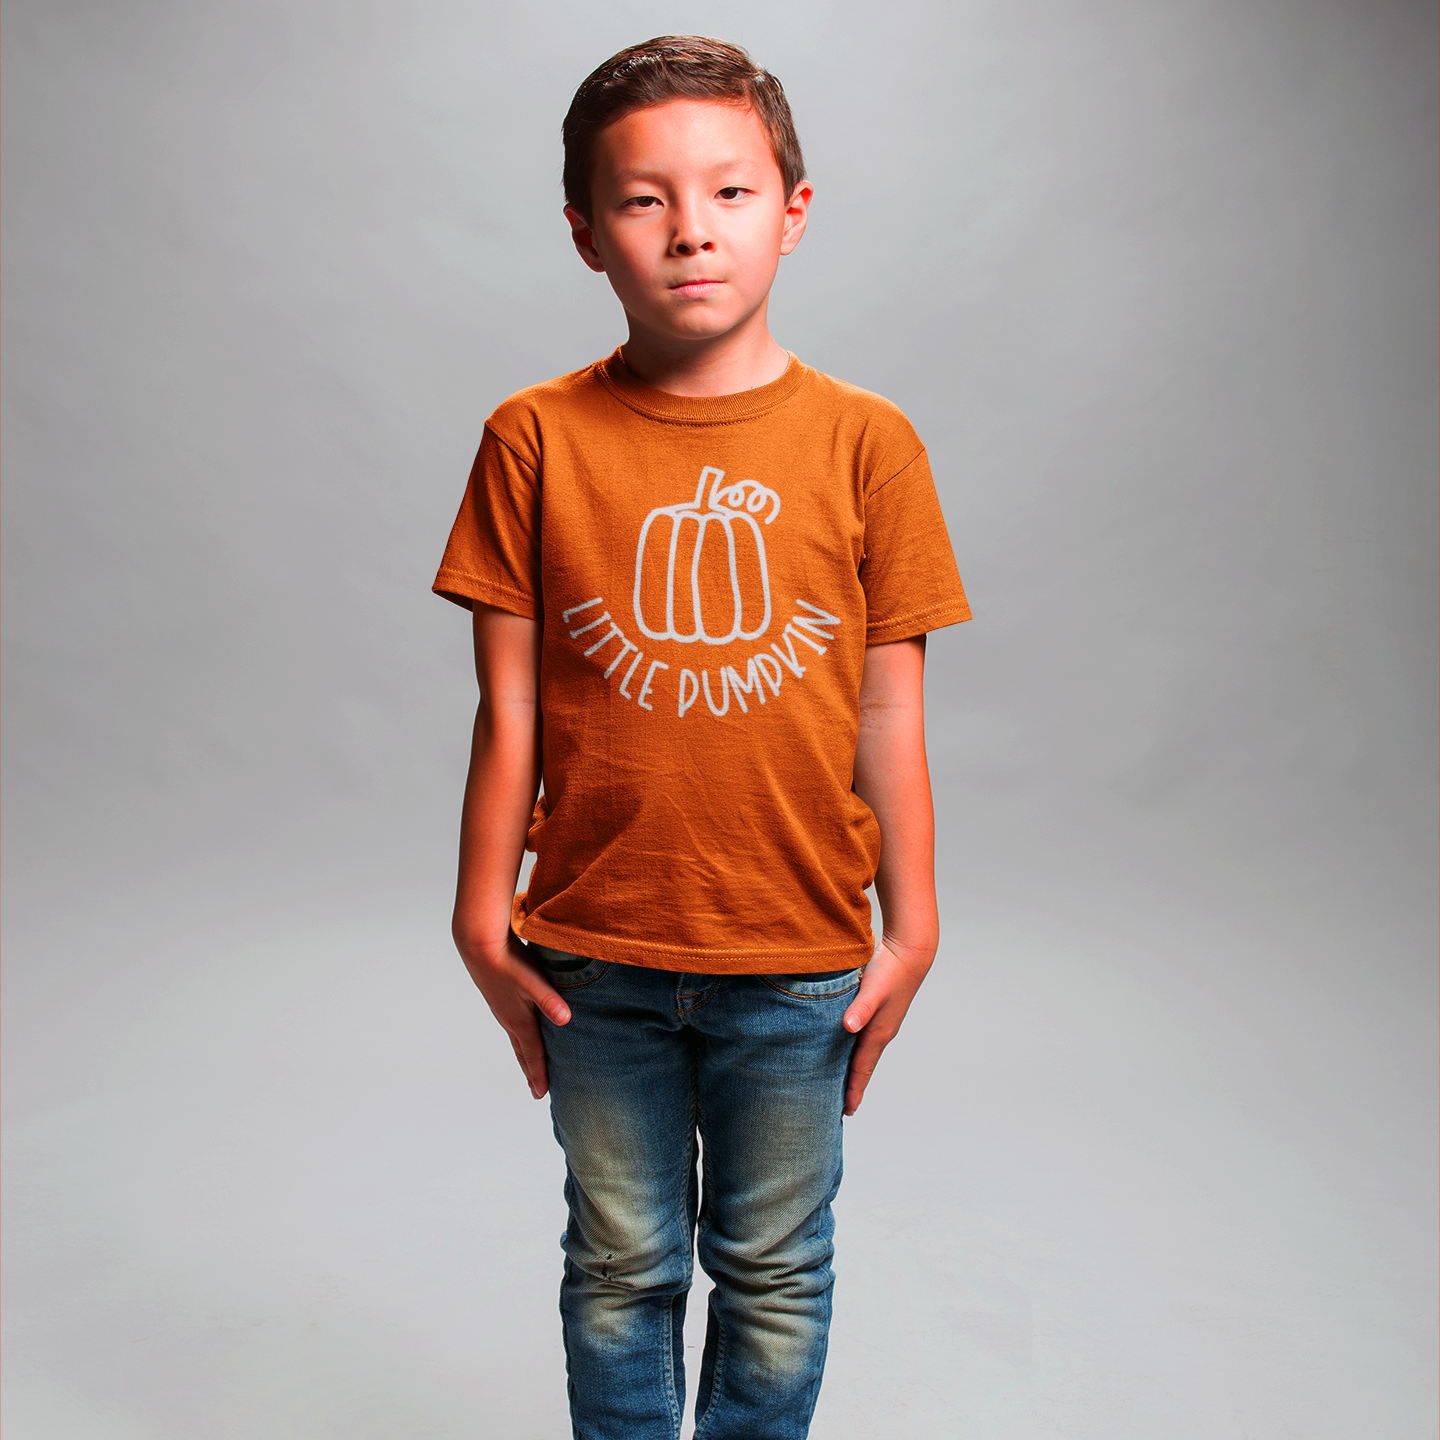 'Little pumpkin' kids shortsleeve shirt